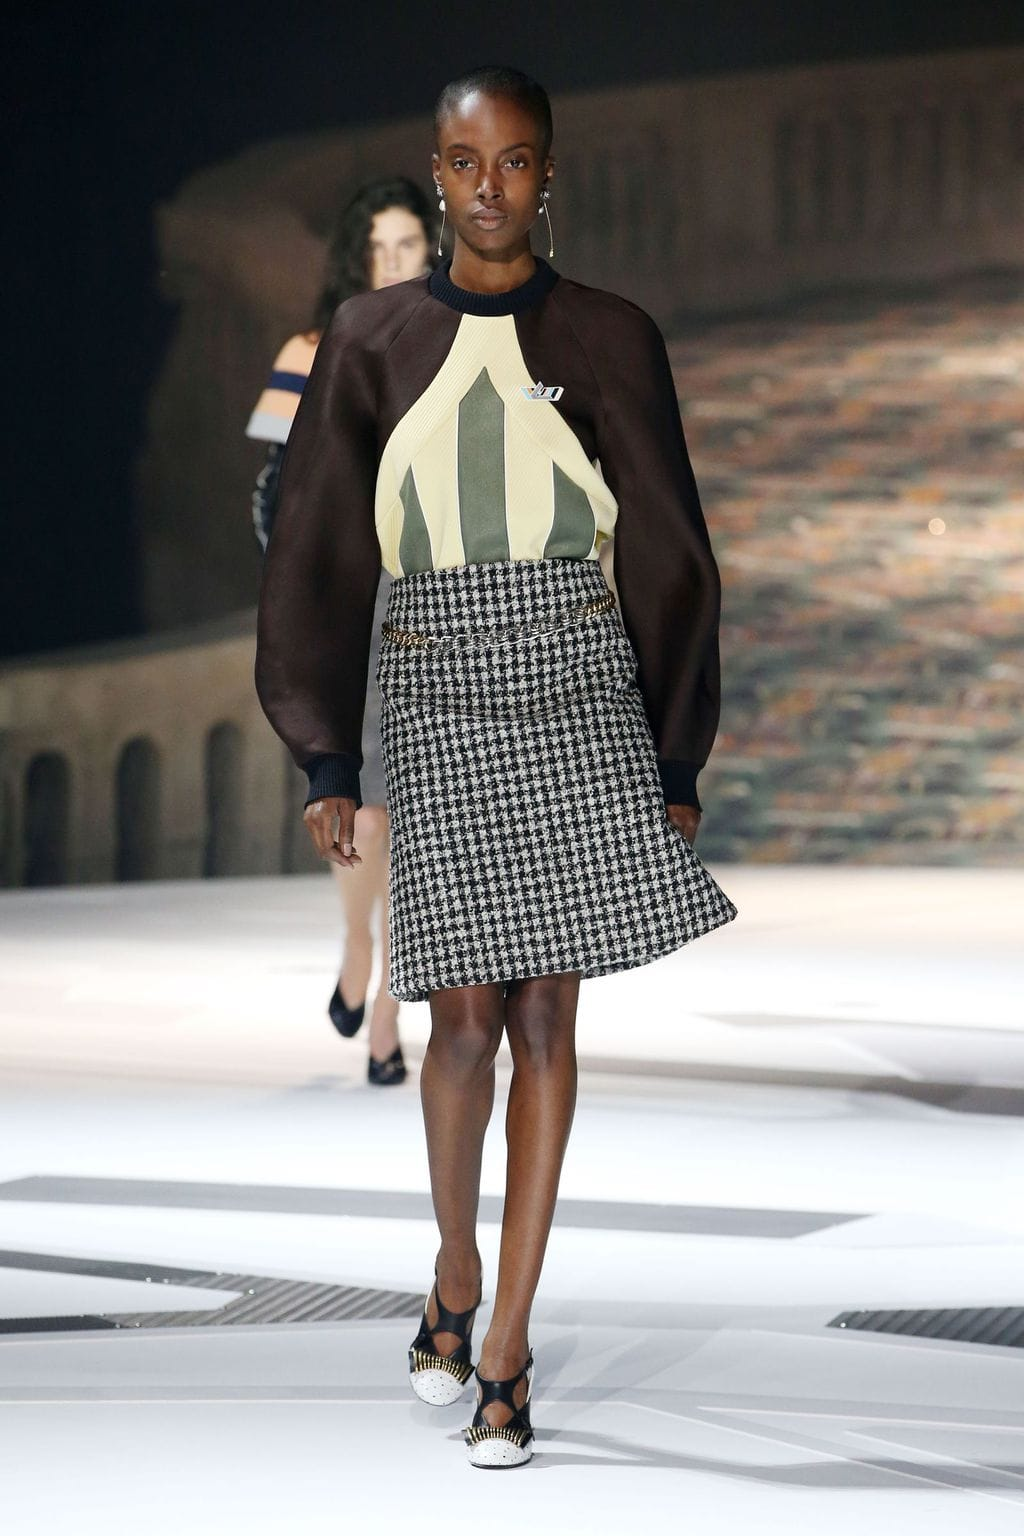 Fall 2018 fashion trends: Houndstooth seen on the runway at Louis Vuitton Fall 2018